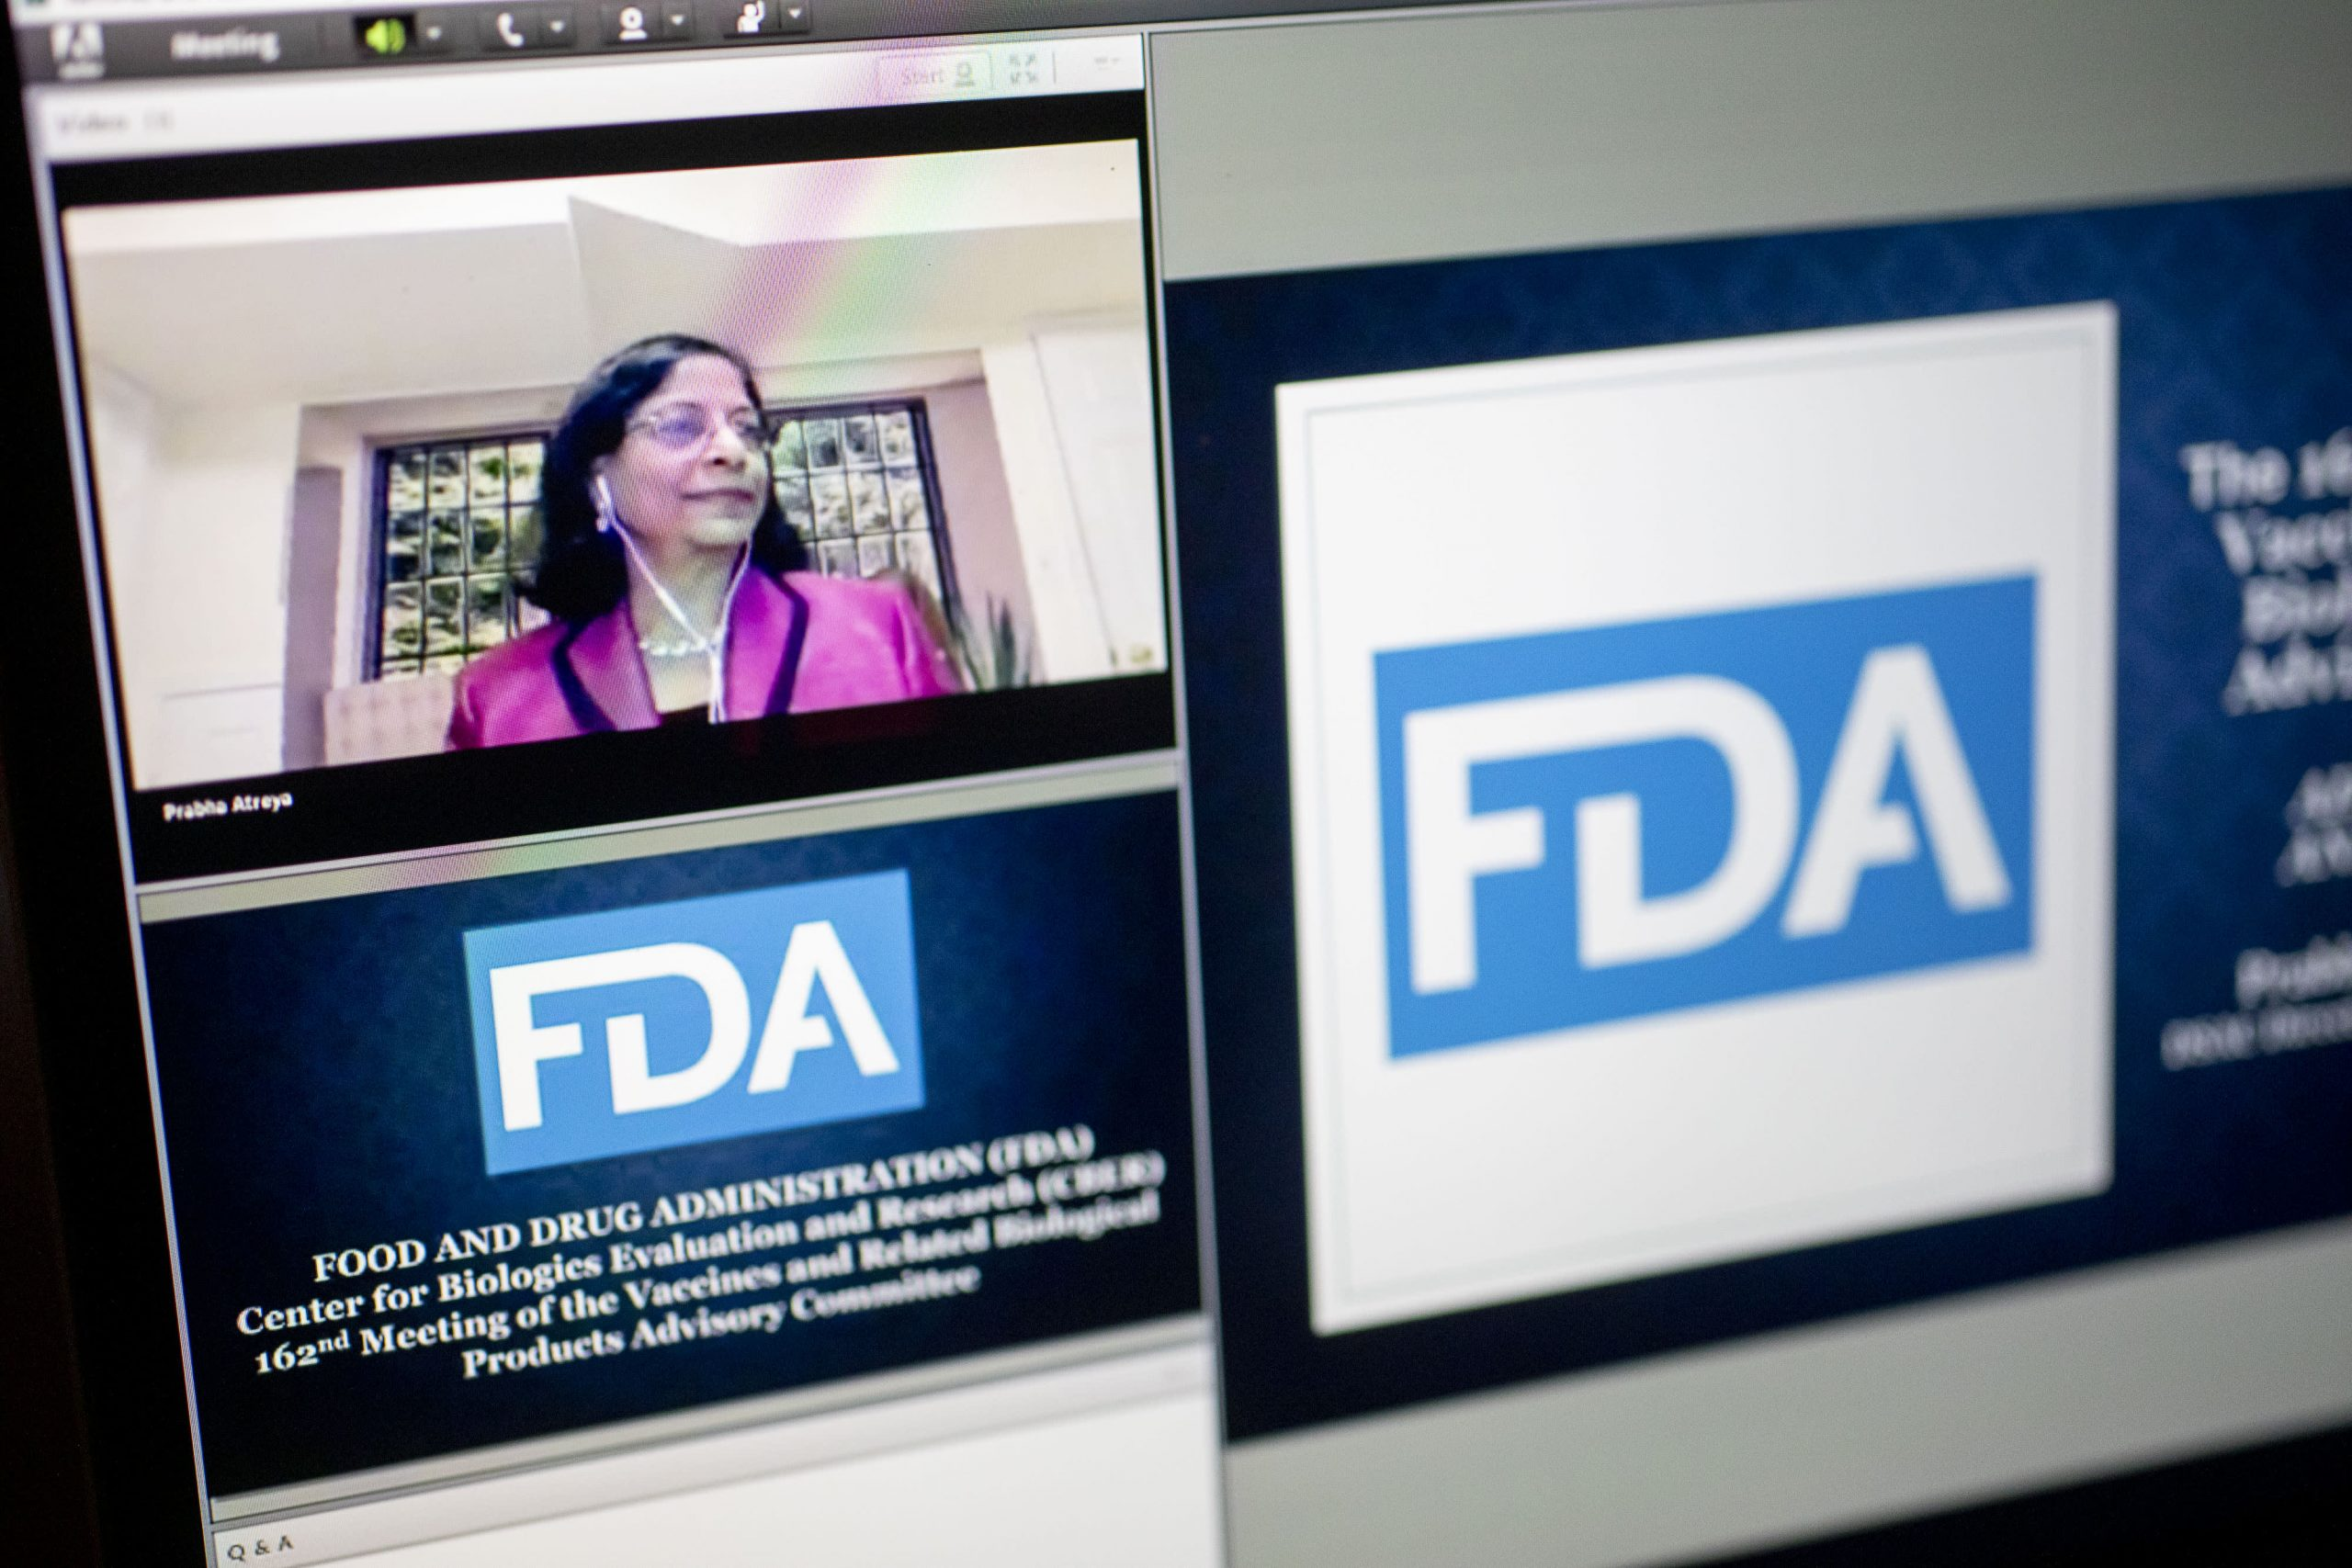 FDA advisory panel meets right now to vote on whether or not to advocate approval of Pfizer's Covid vaccine